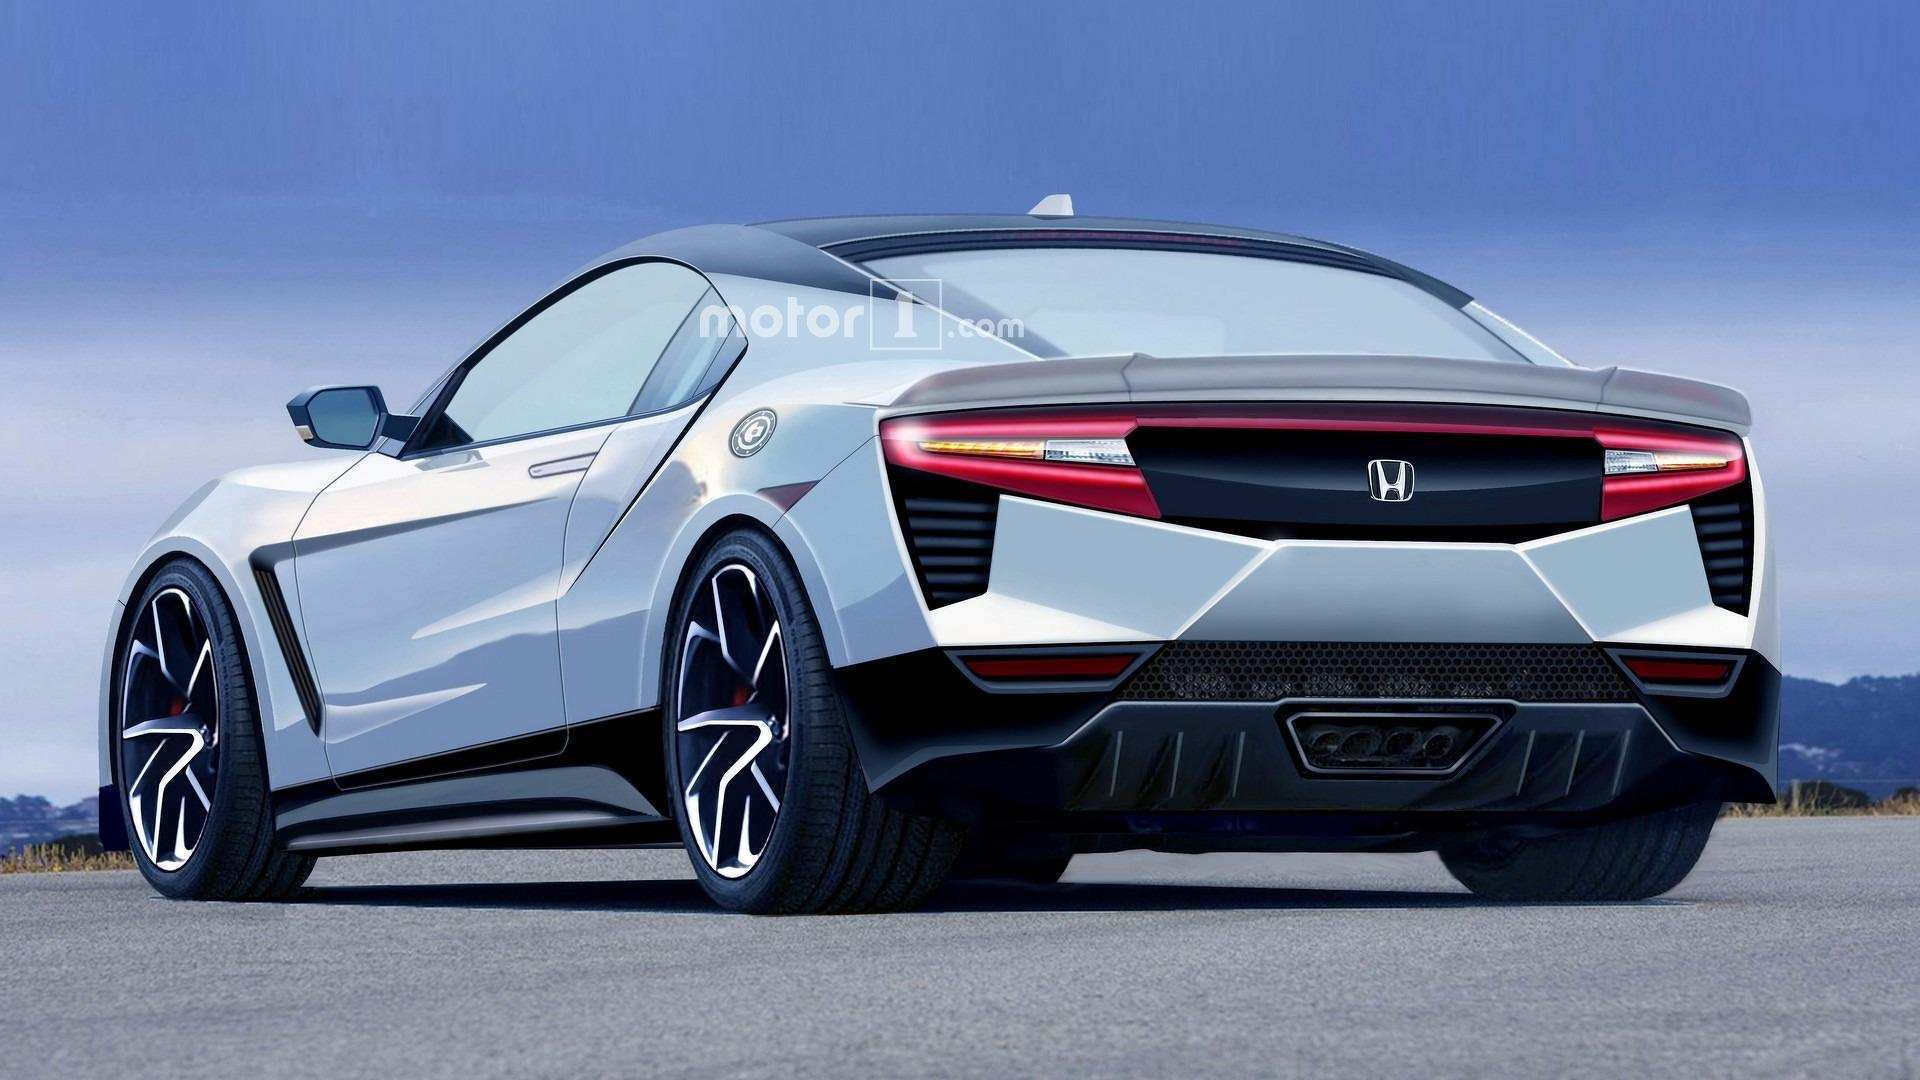 51 New 2019 Honda Sports Car Review And Release Date